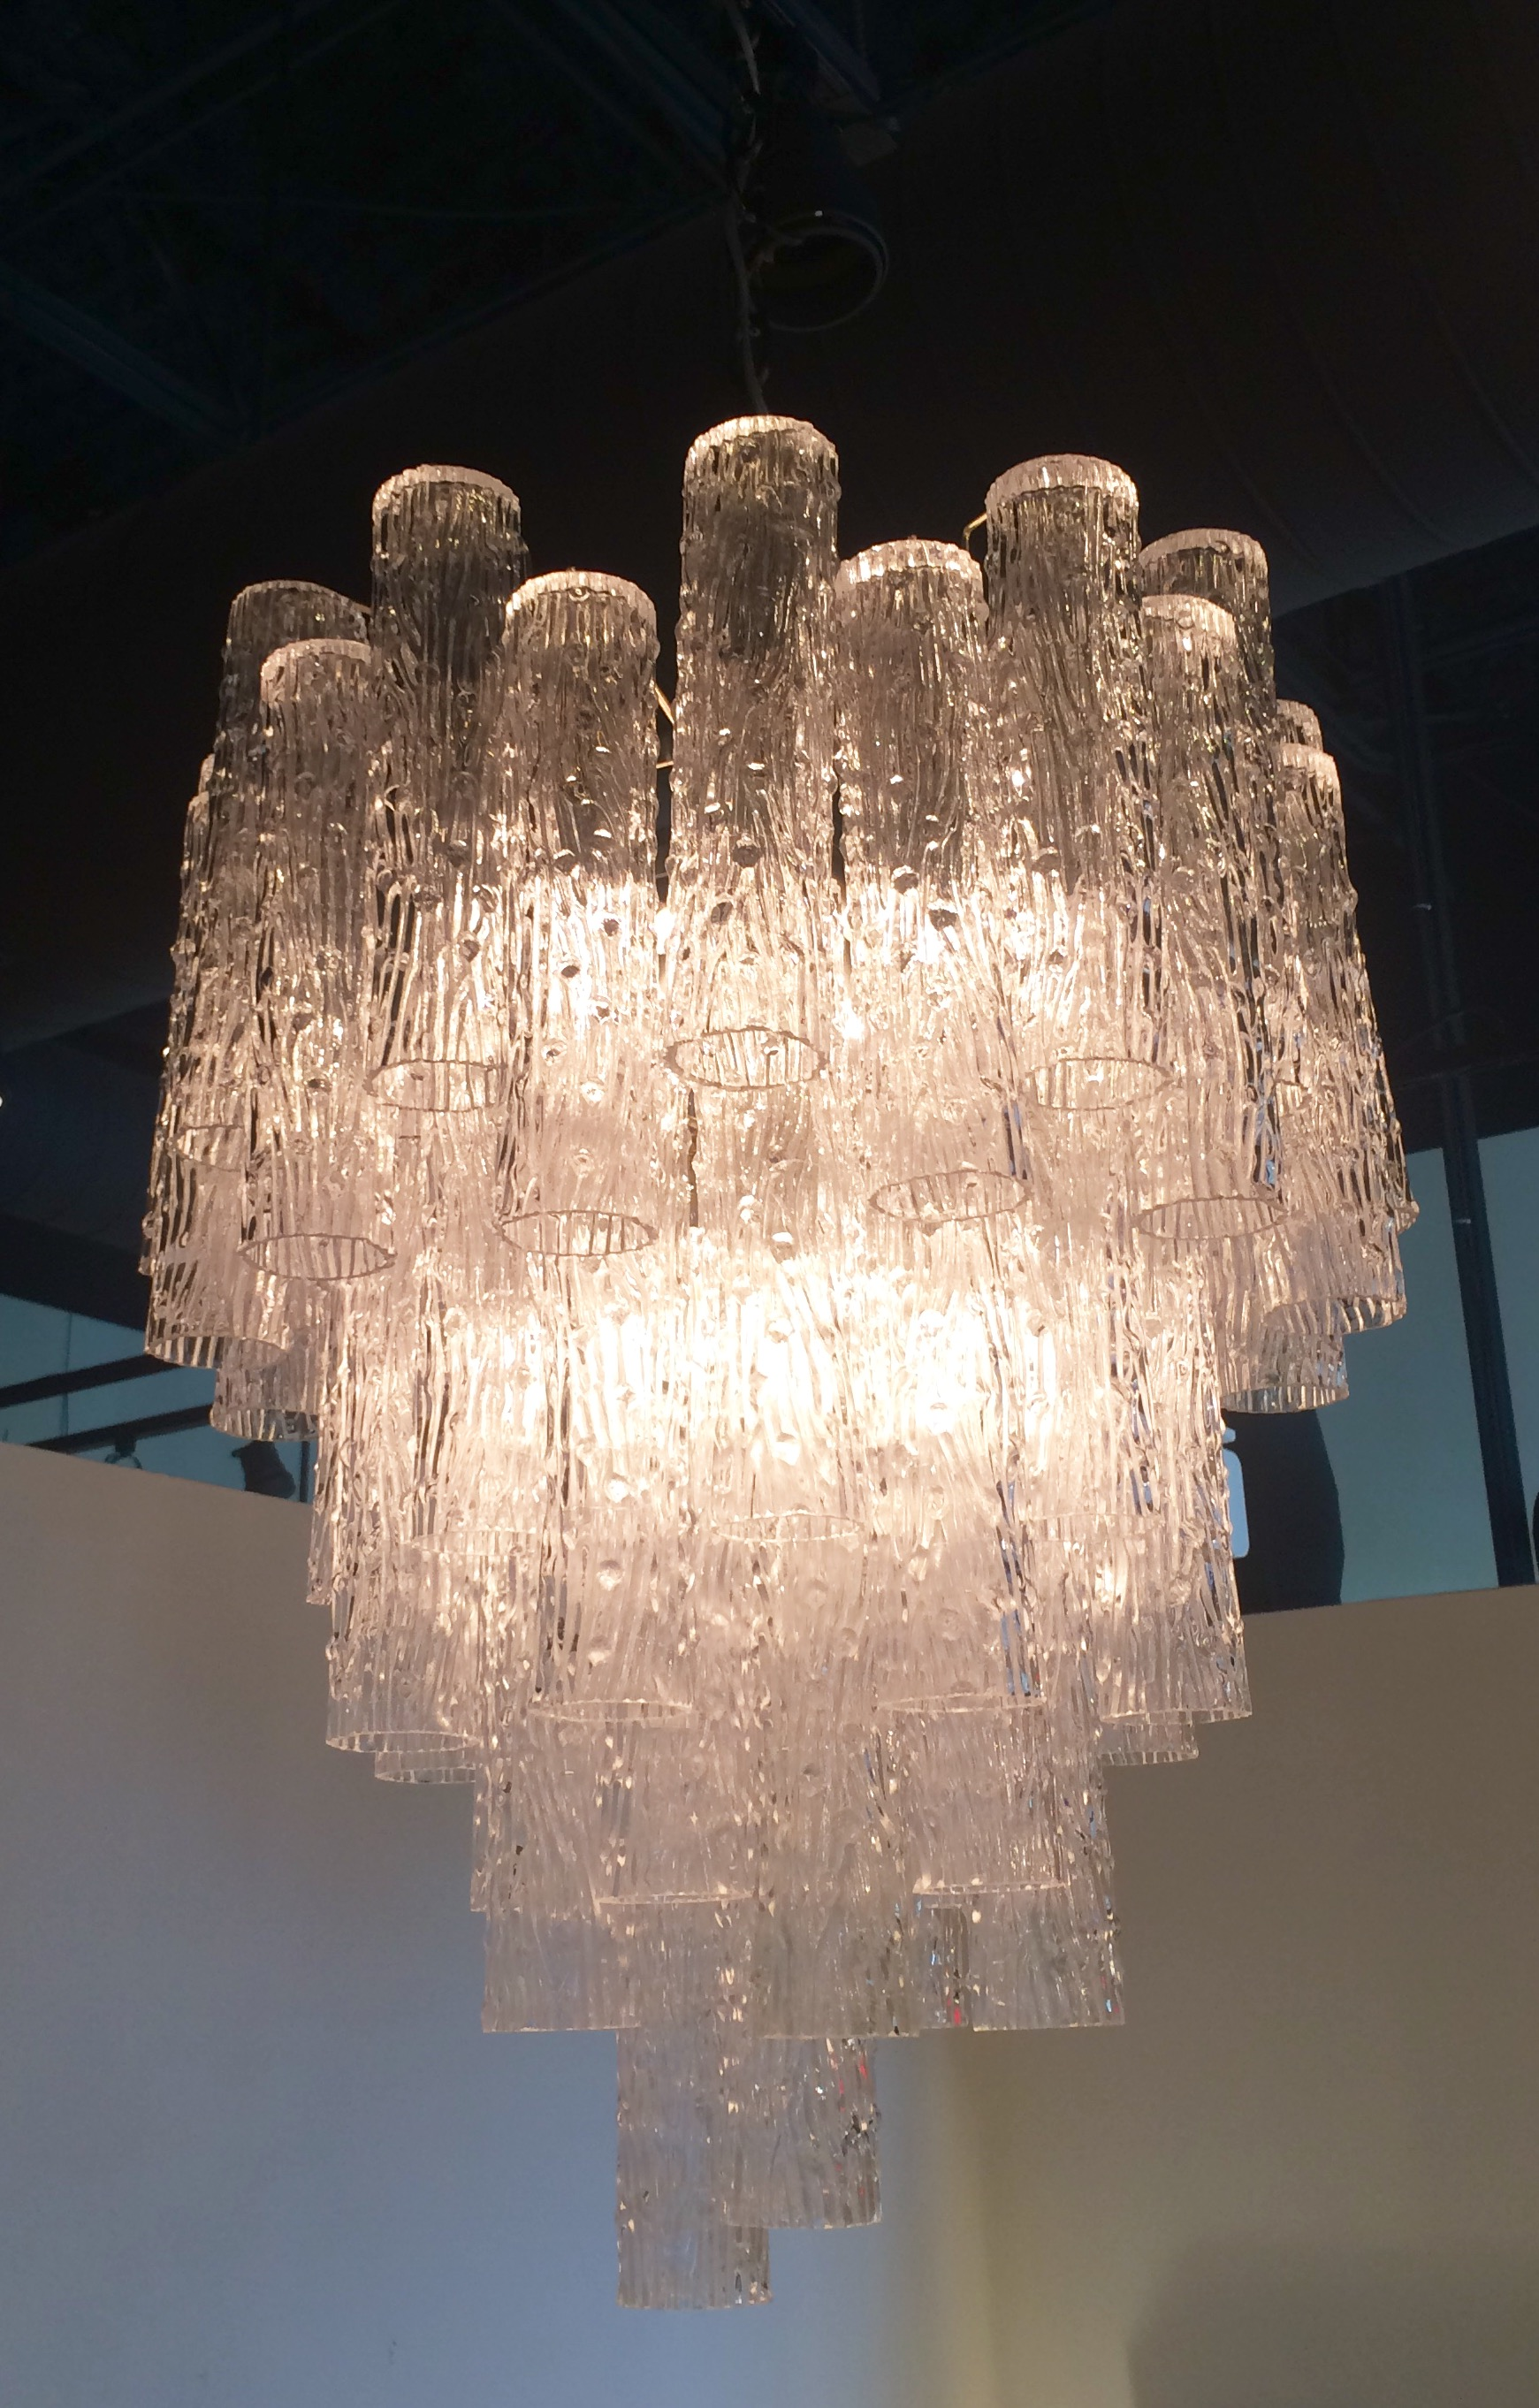 Sold Mid 20th Century Venini Crystal Chandelier With Tronchi Drops James Mcinroe Inc